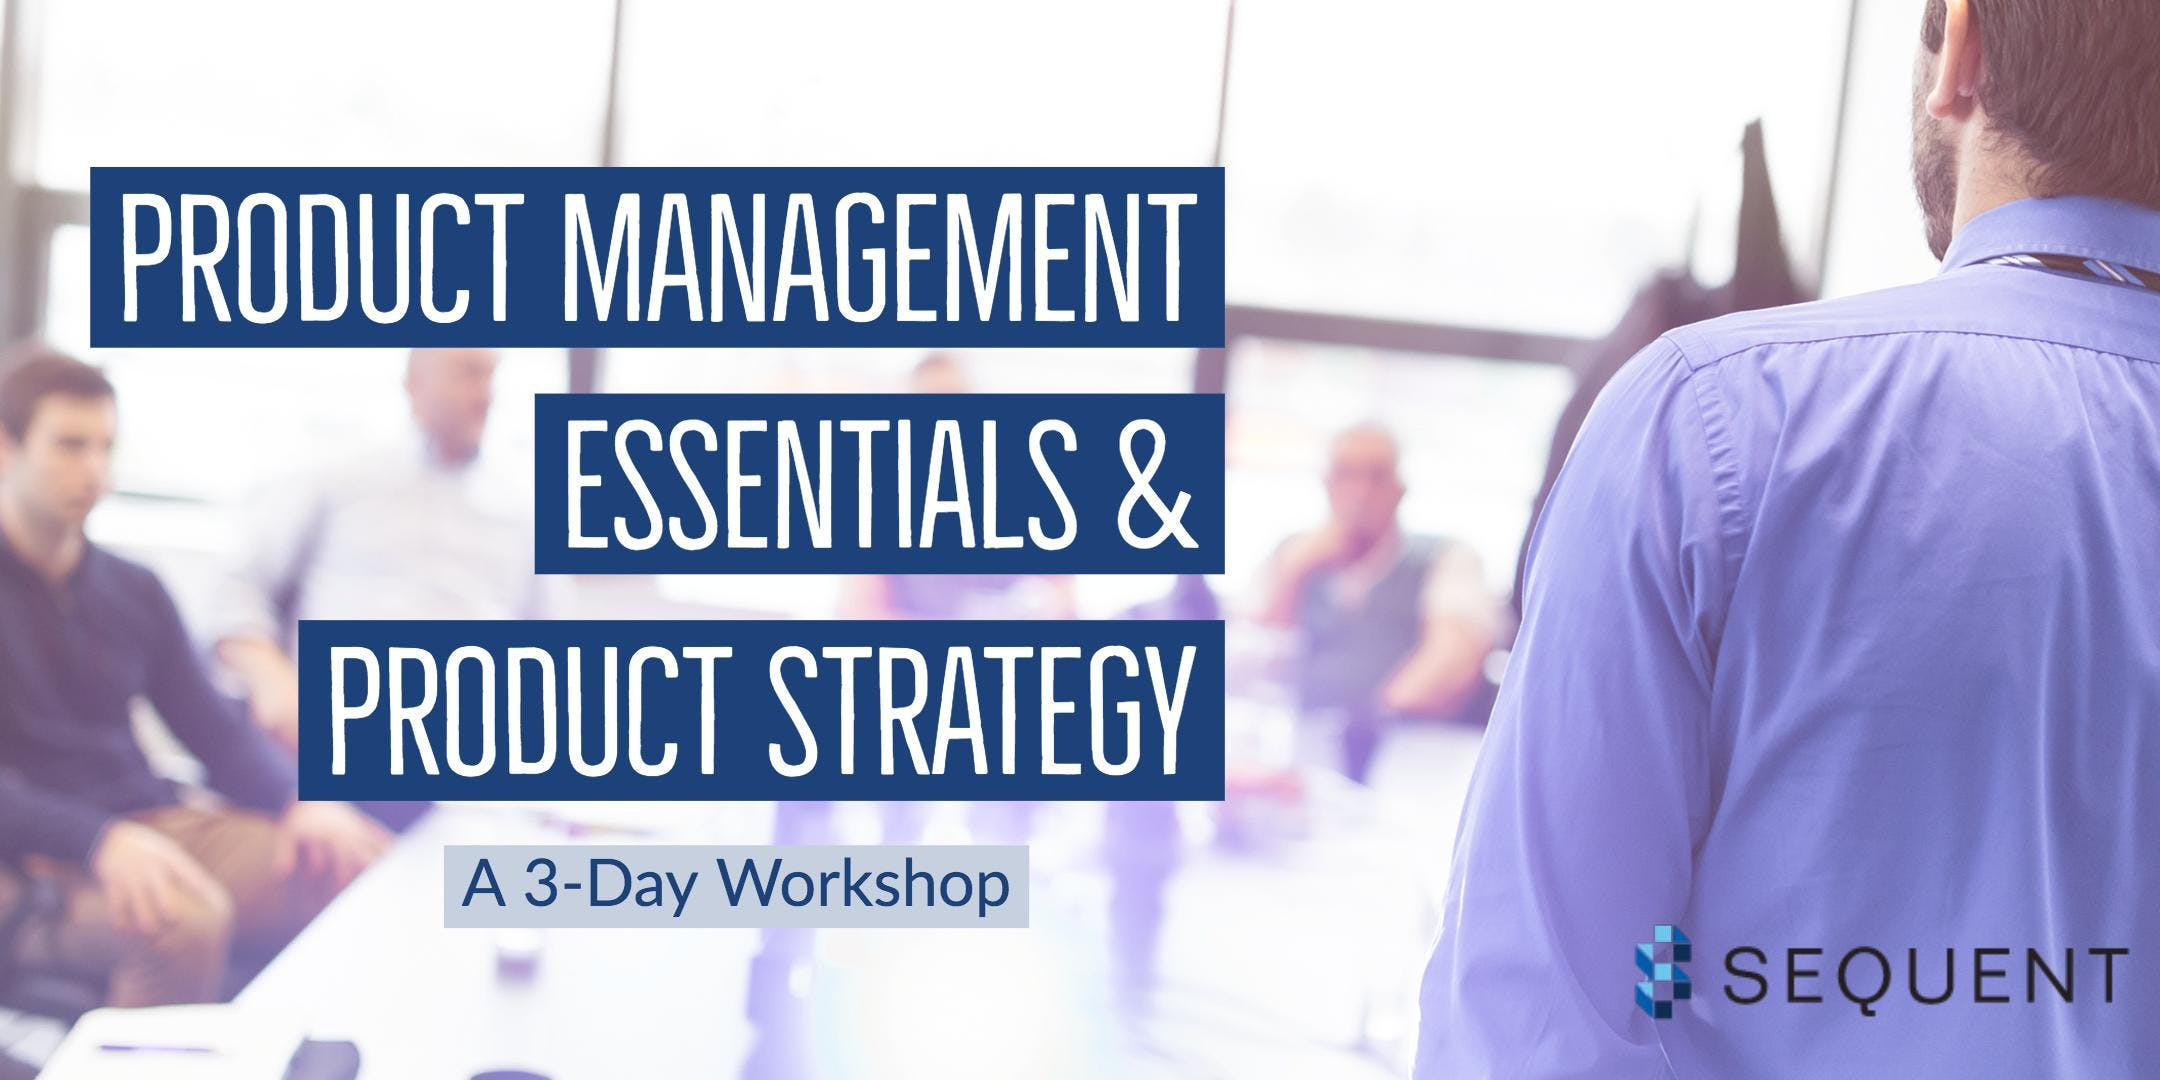 Product Management Essentials and Product Strategy Workshop Bundle New York City